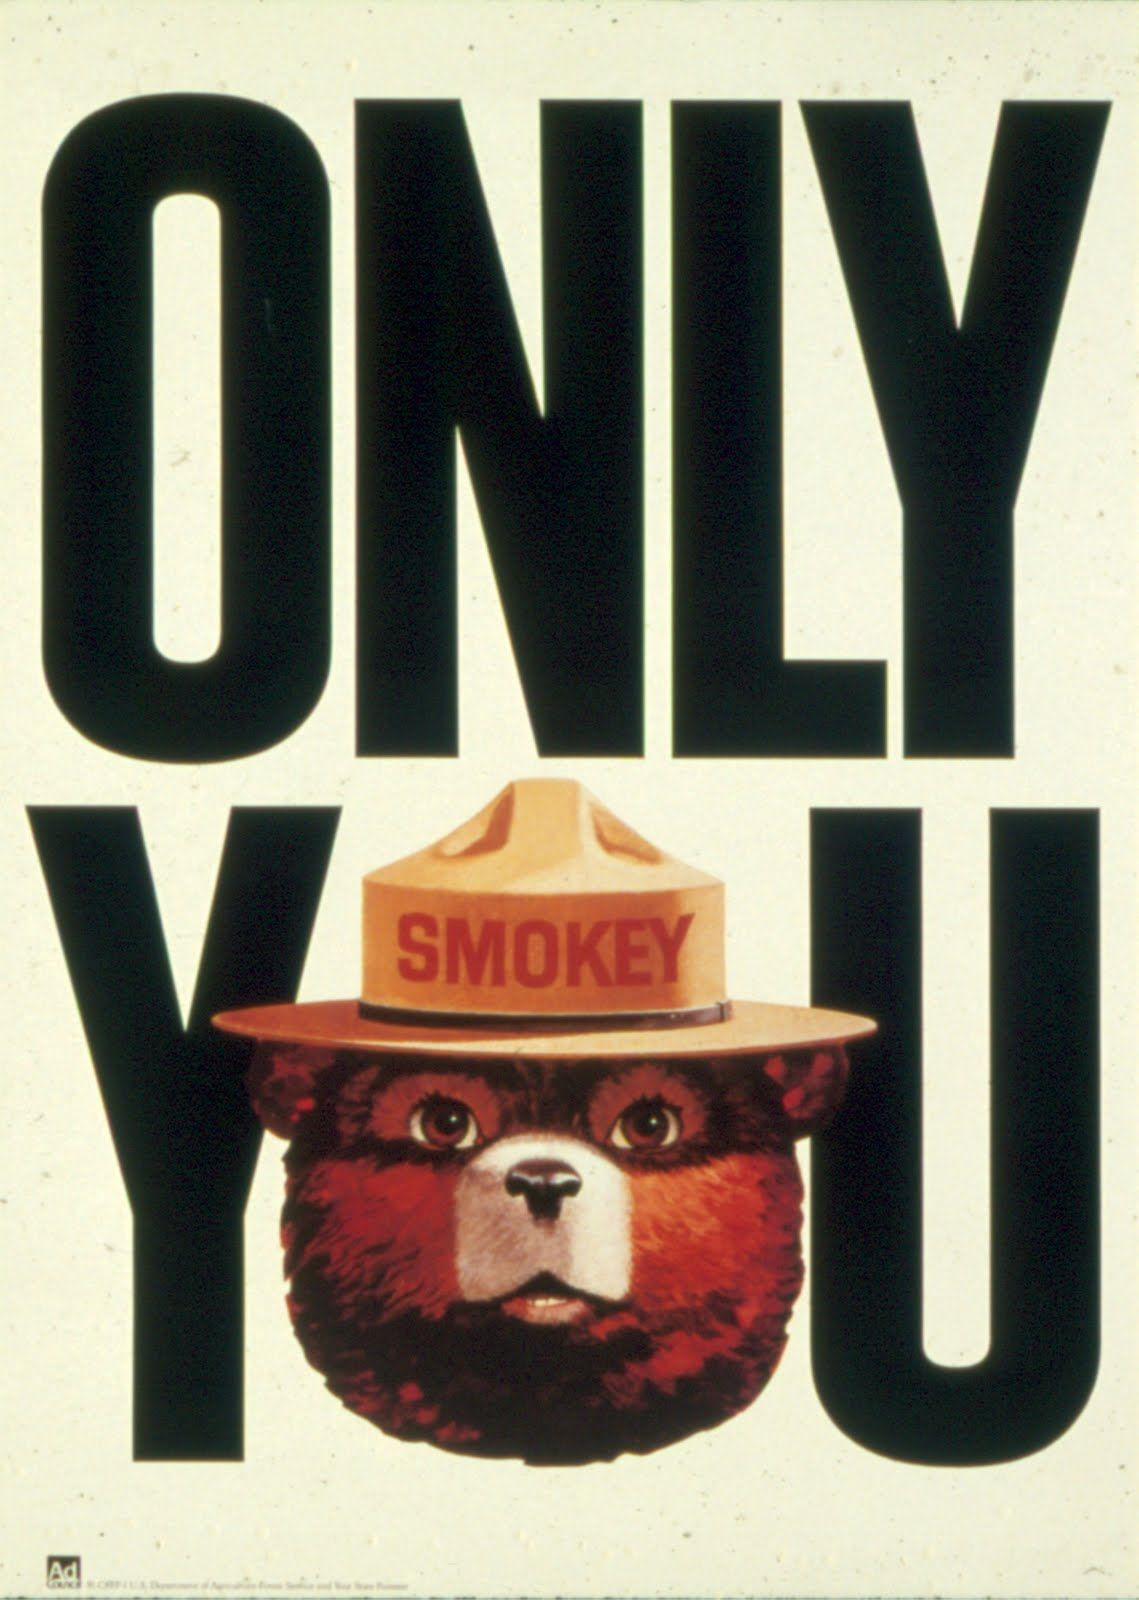 smokey the bear To prepare smokey bear for a new marketing campaign, ad agencies have given  him a fresher look and social media accounts.